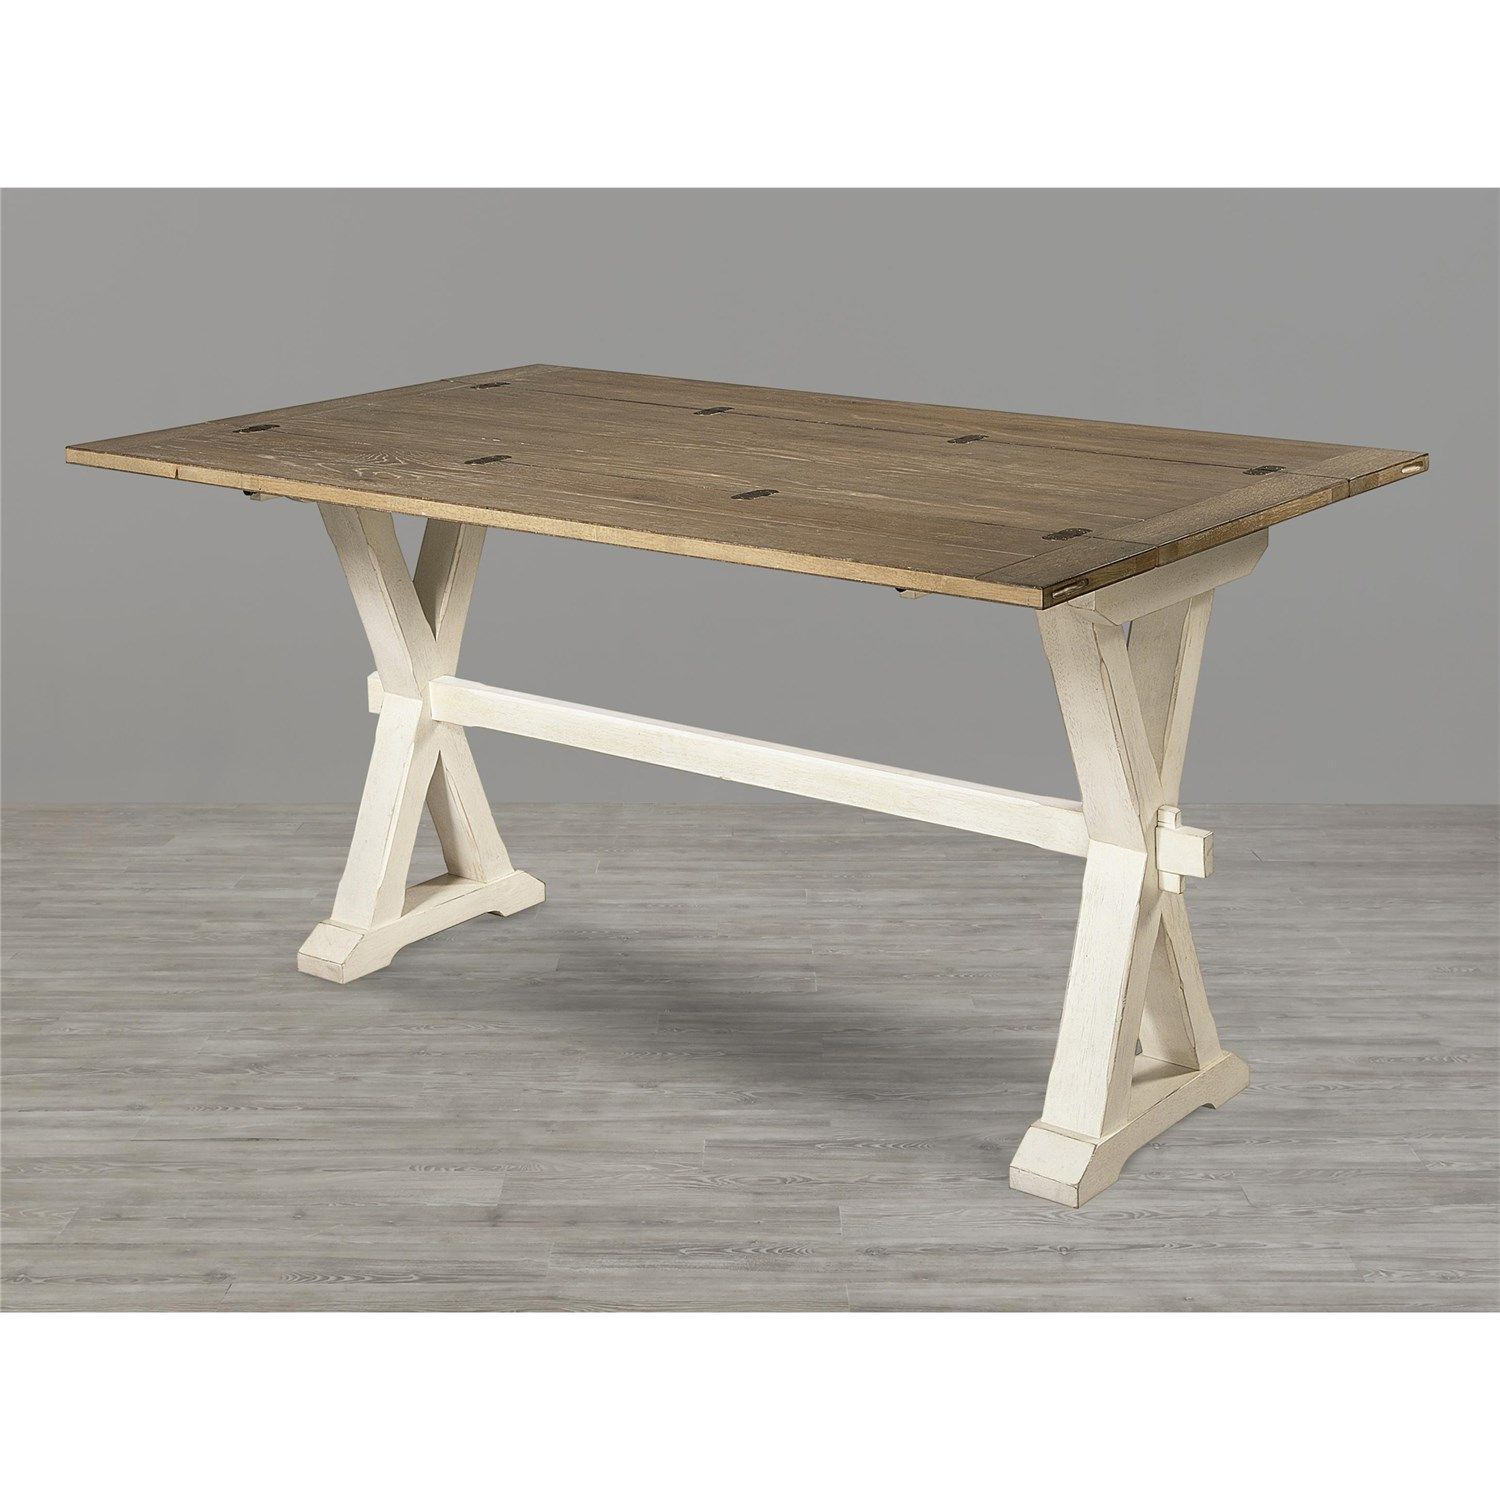 Universal furniture 128816 drop leaf console table farmhouse universal furniture 128816 drop leaf console table geotapseo Choice Image